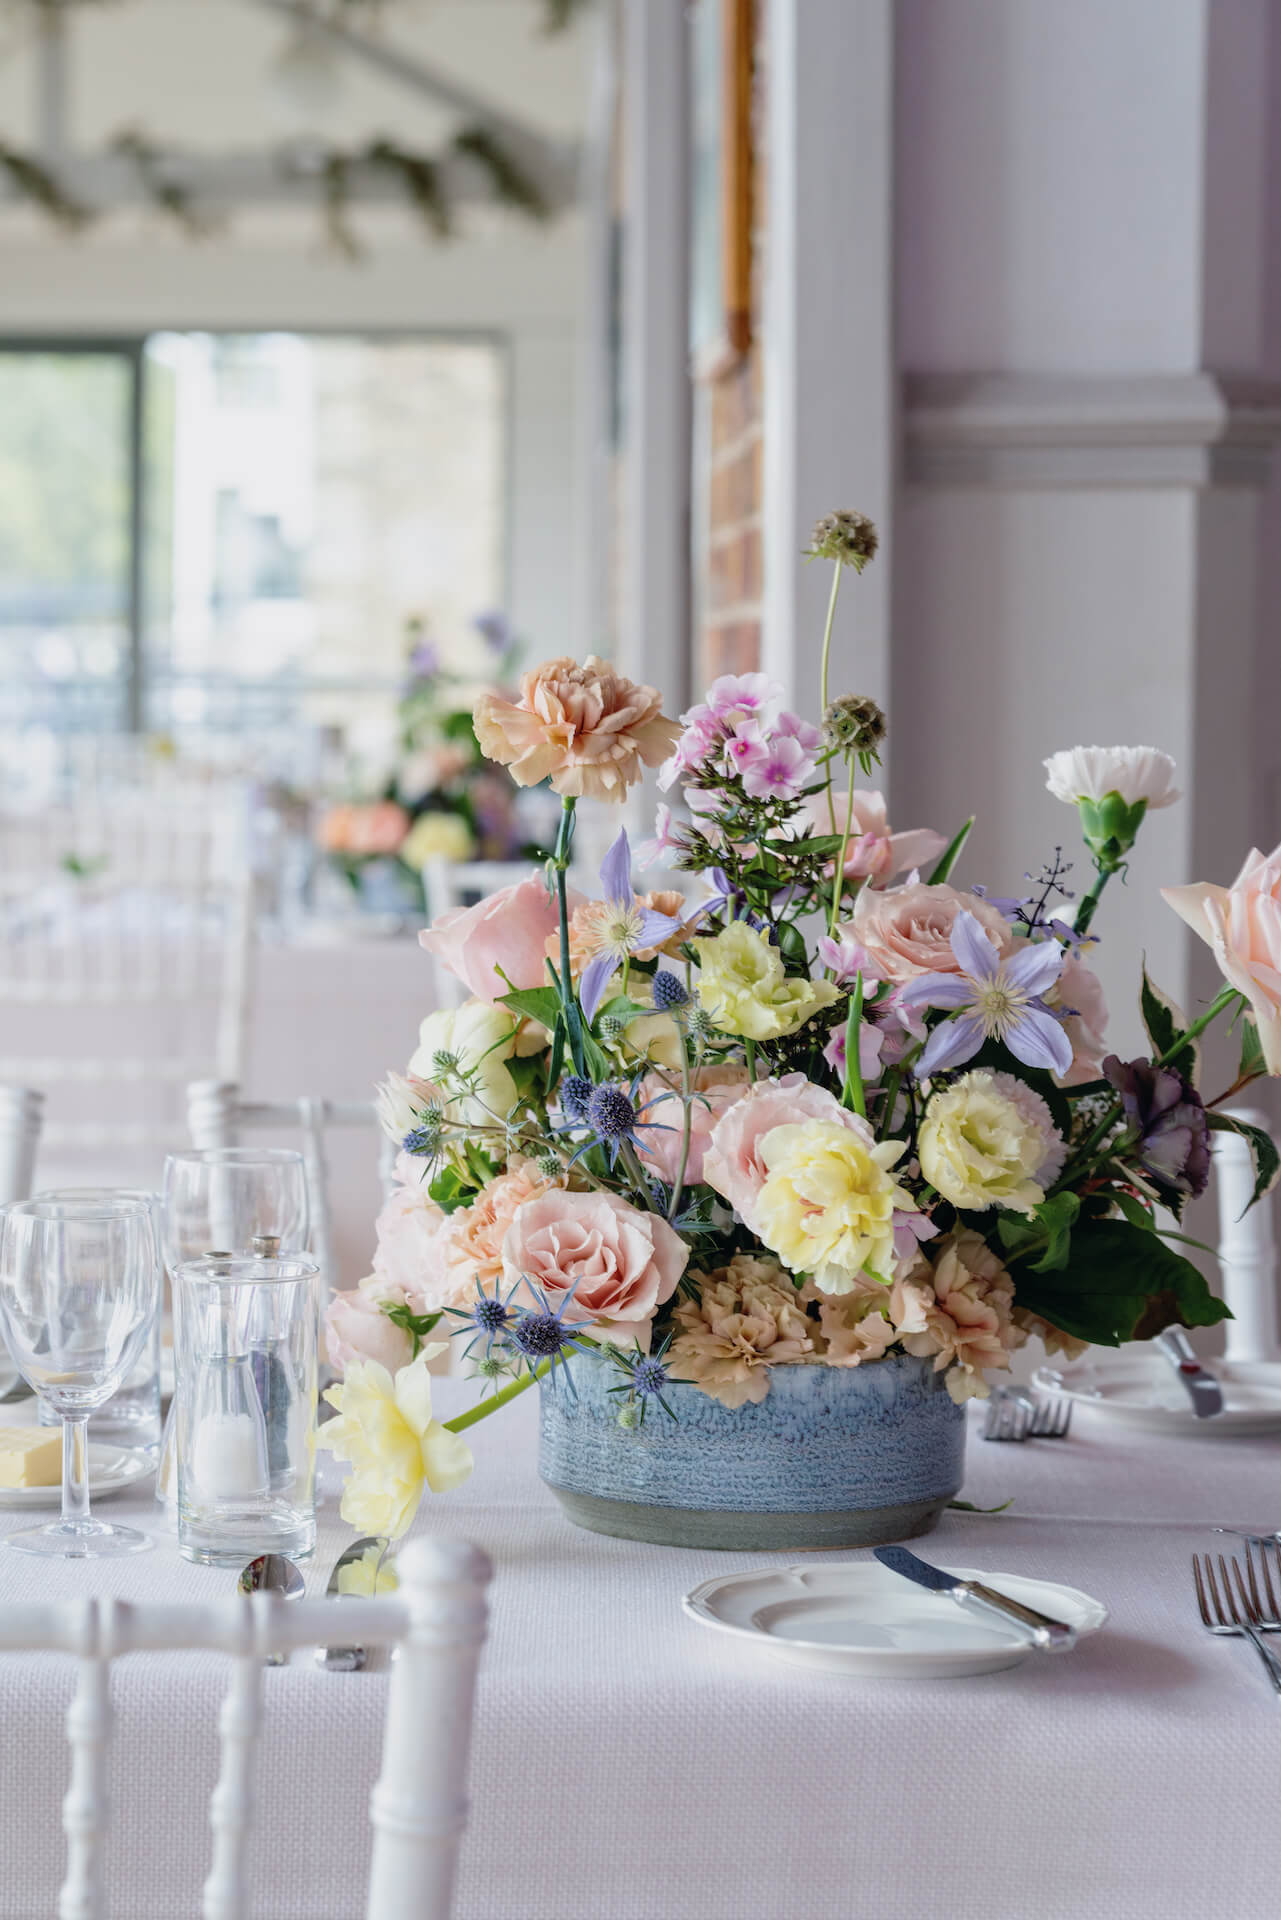 Thames Rowing Club Wedding Table Centrepiece